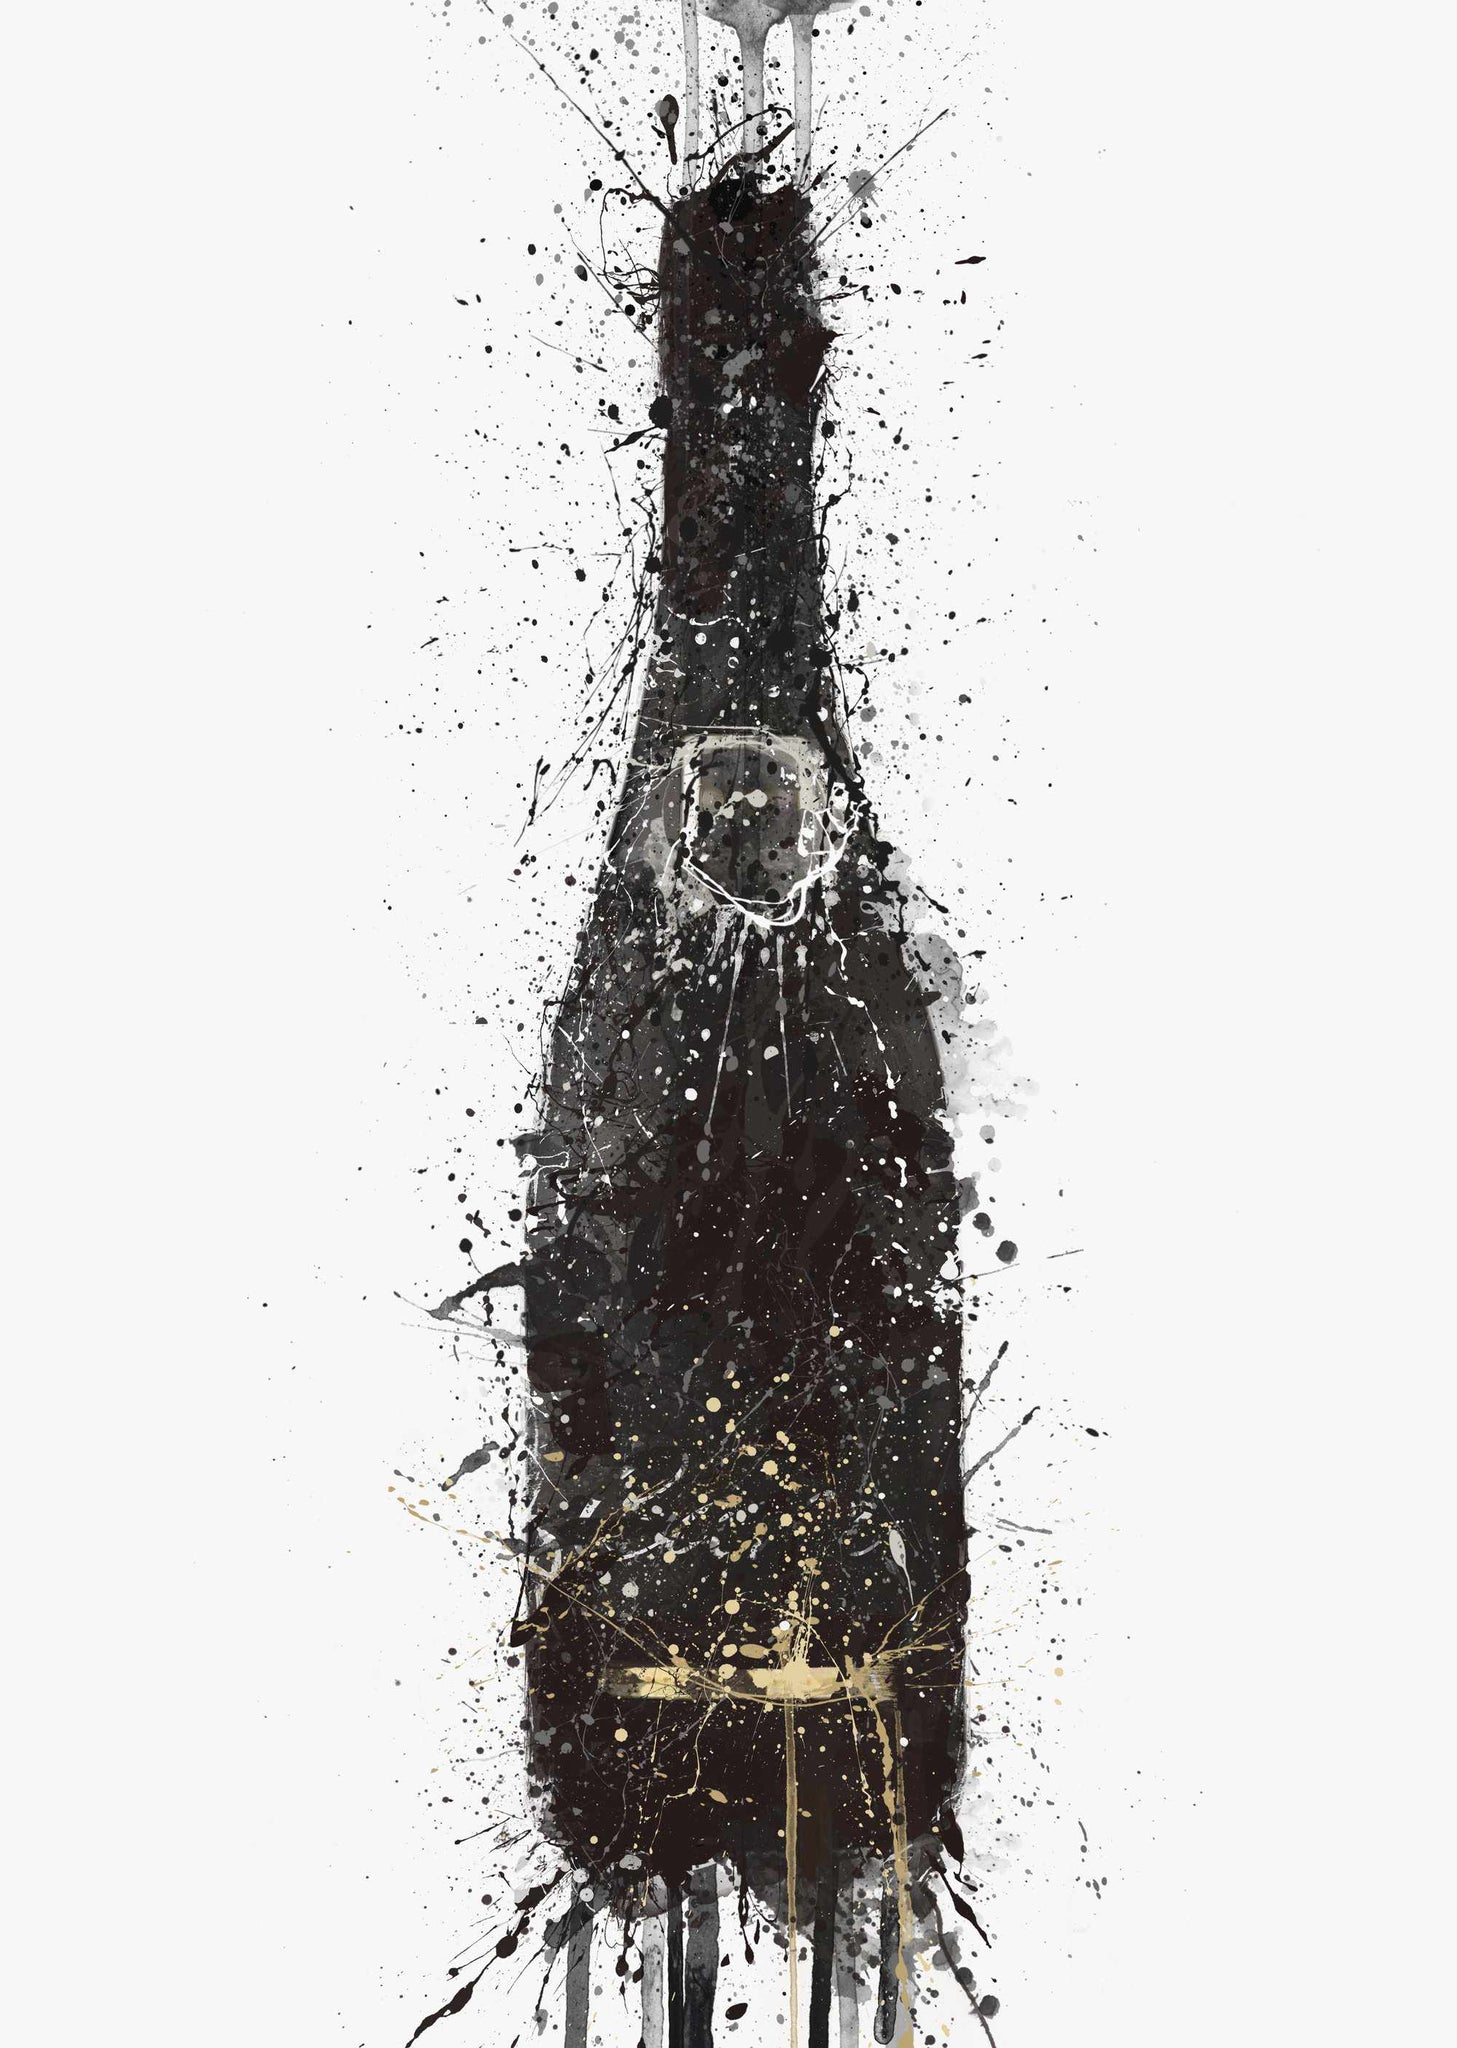 Champagne Bottle Wall Art Print 'Black Fizz'-We Love Prints